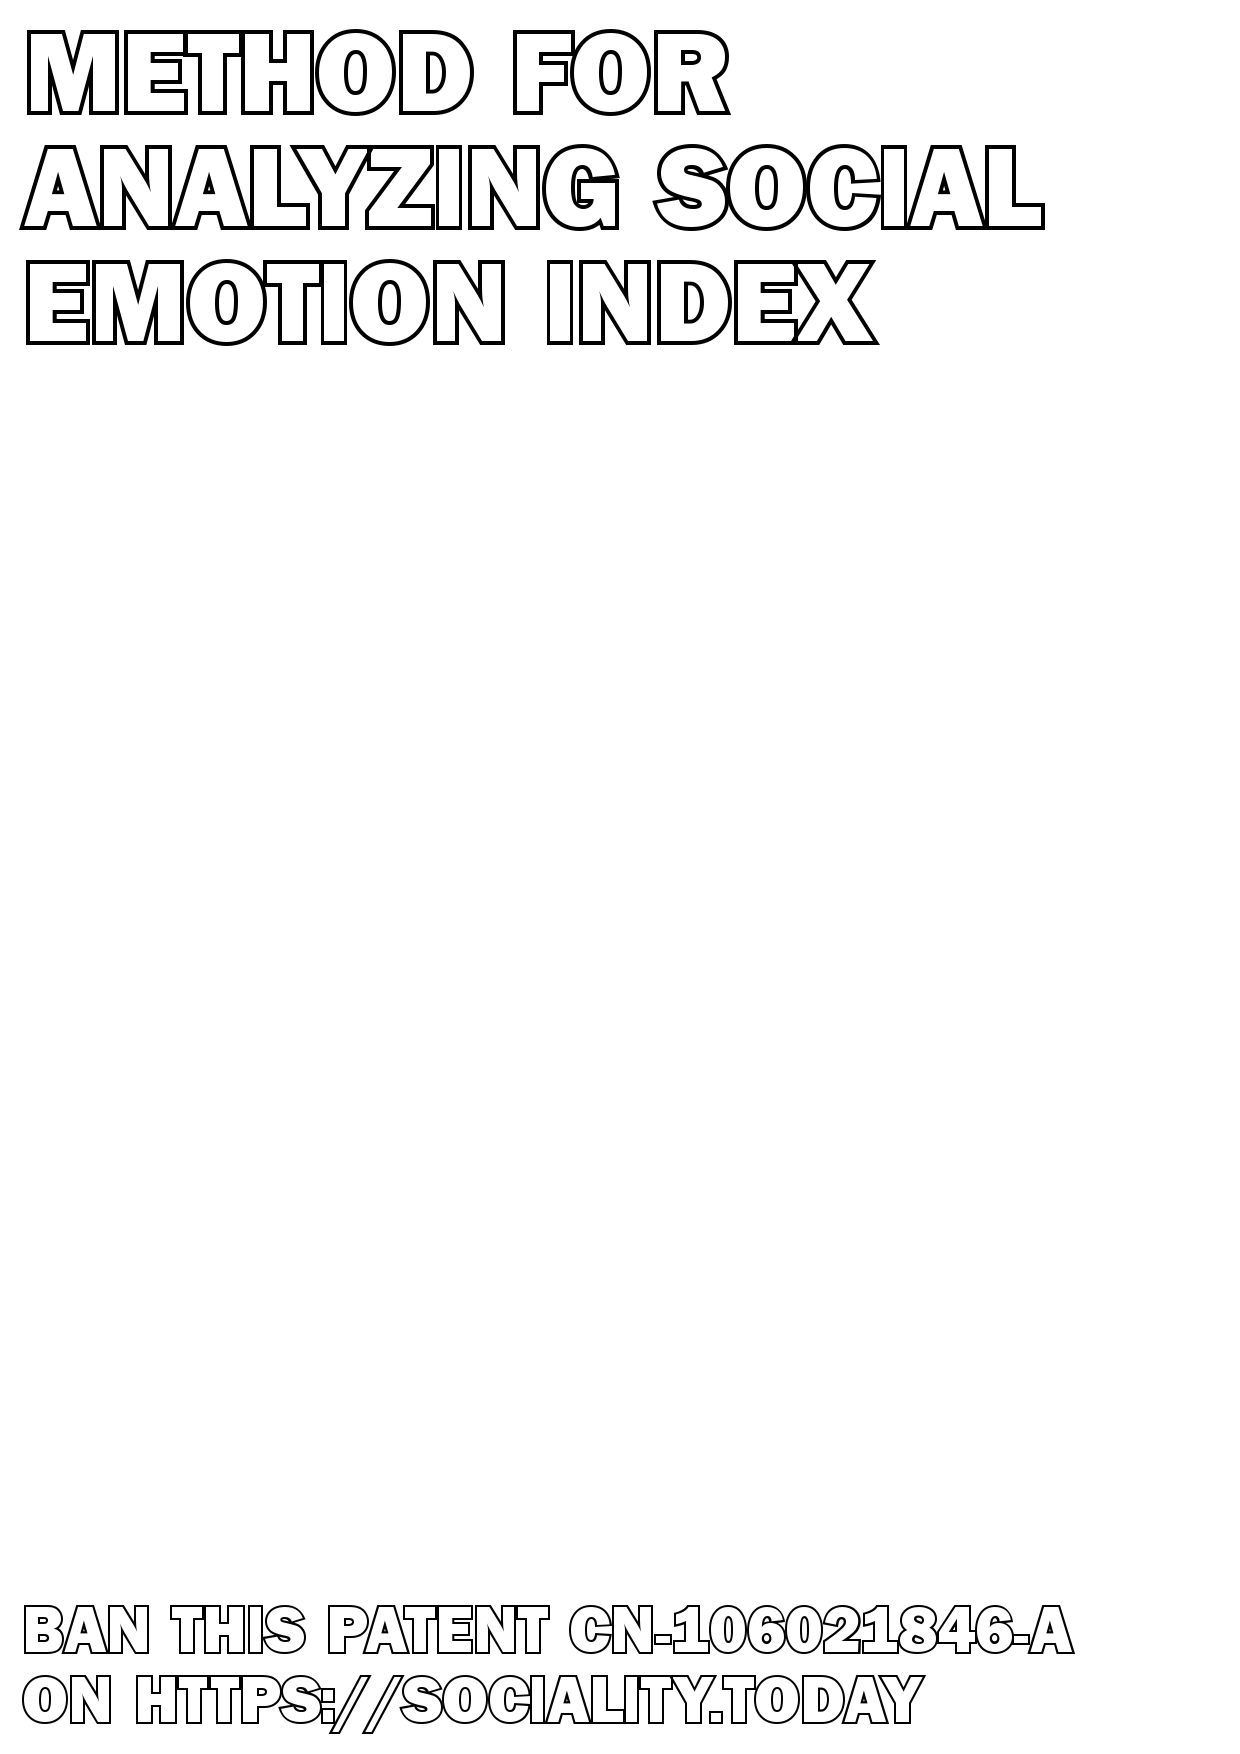 Method for analyzing social emotion index  - CN-106021846-A